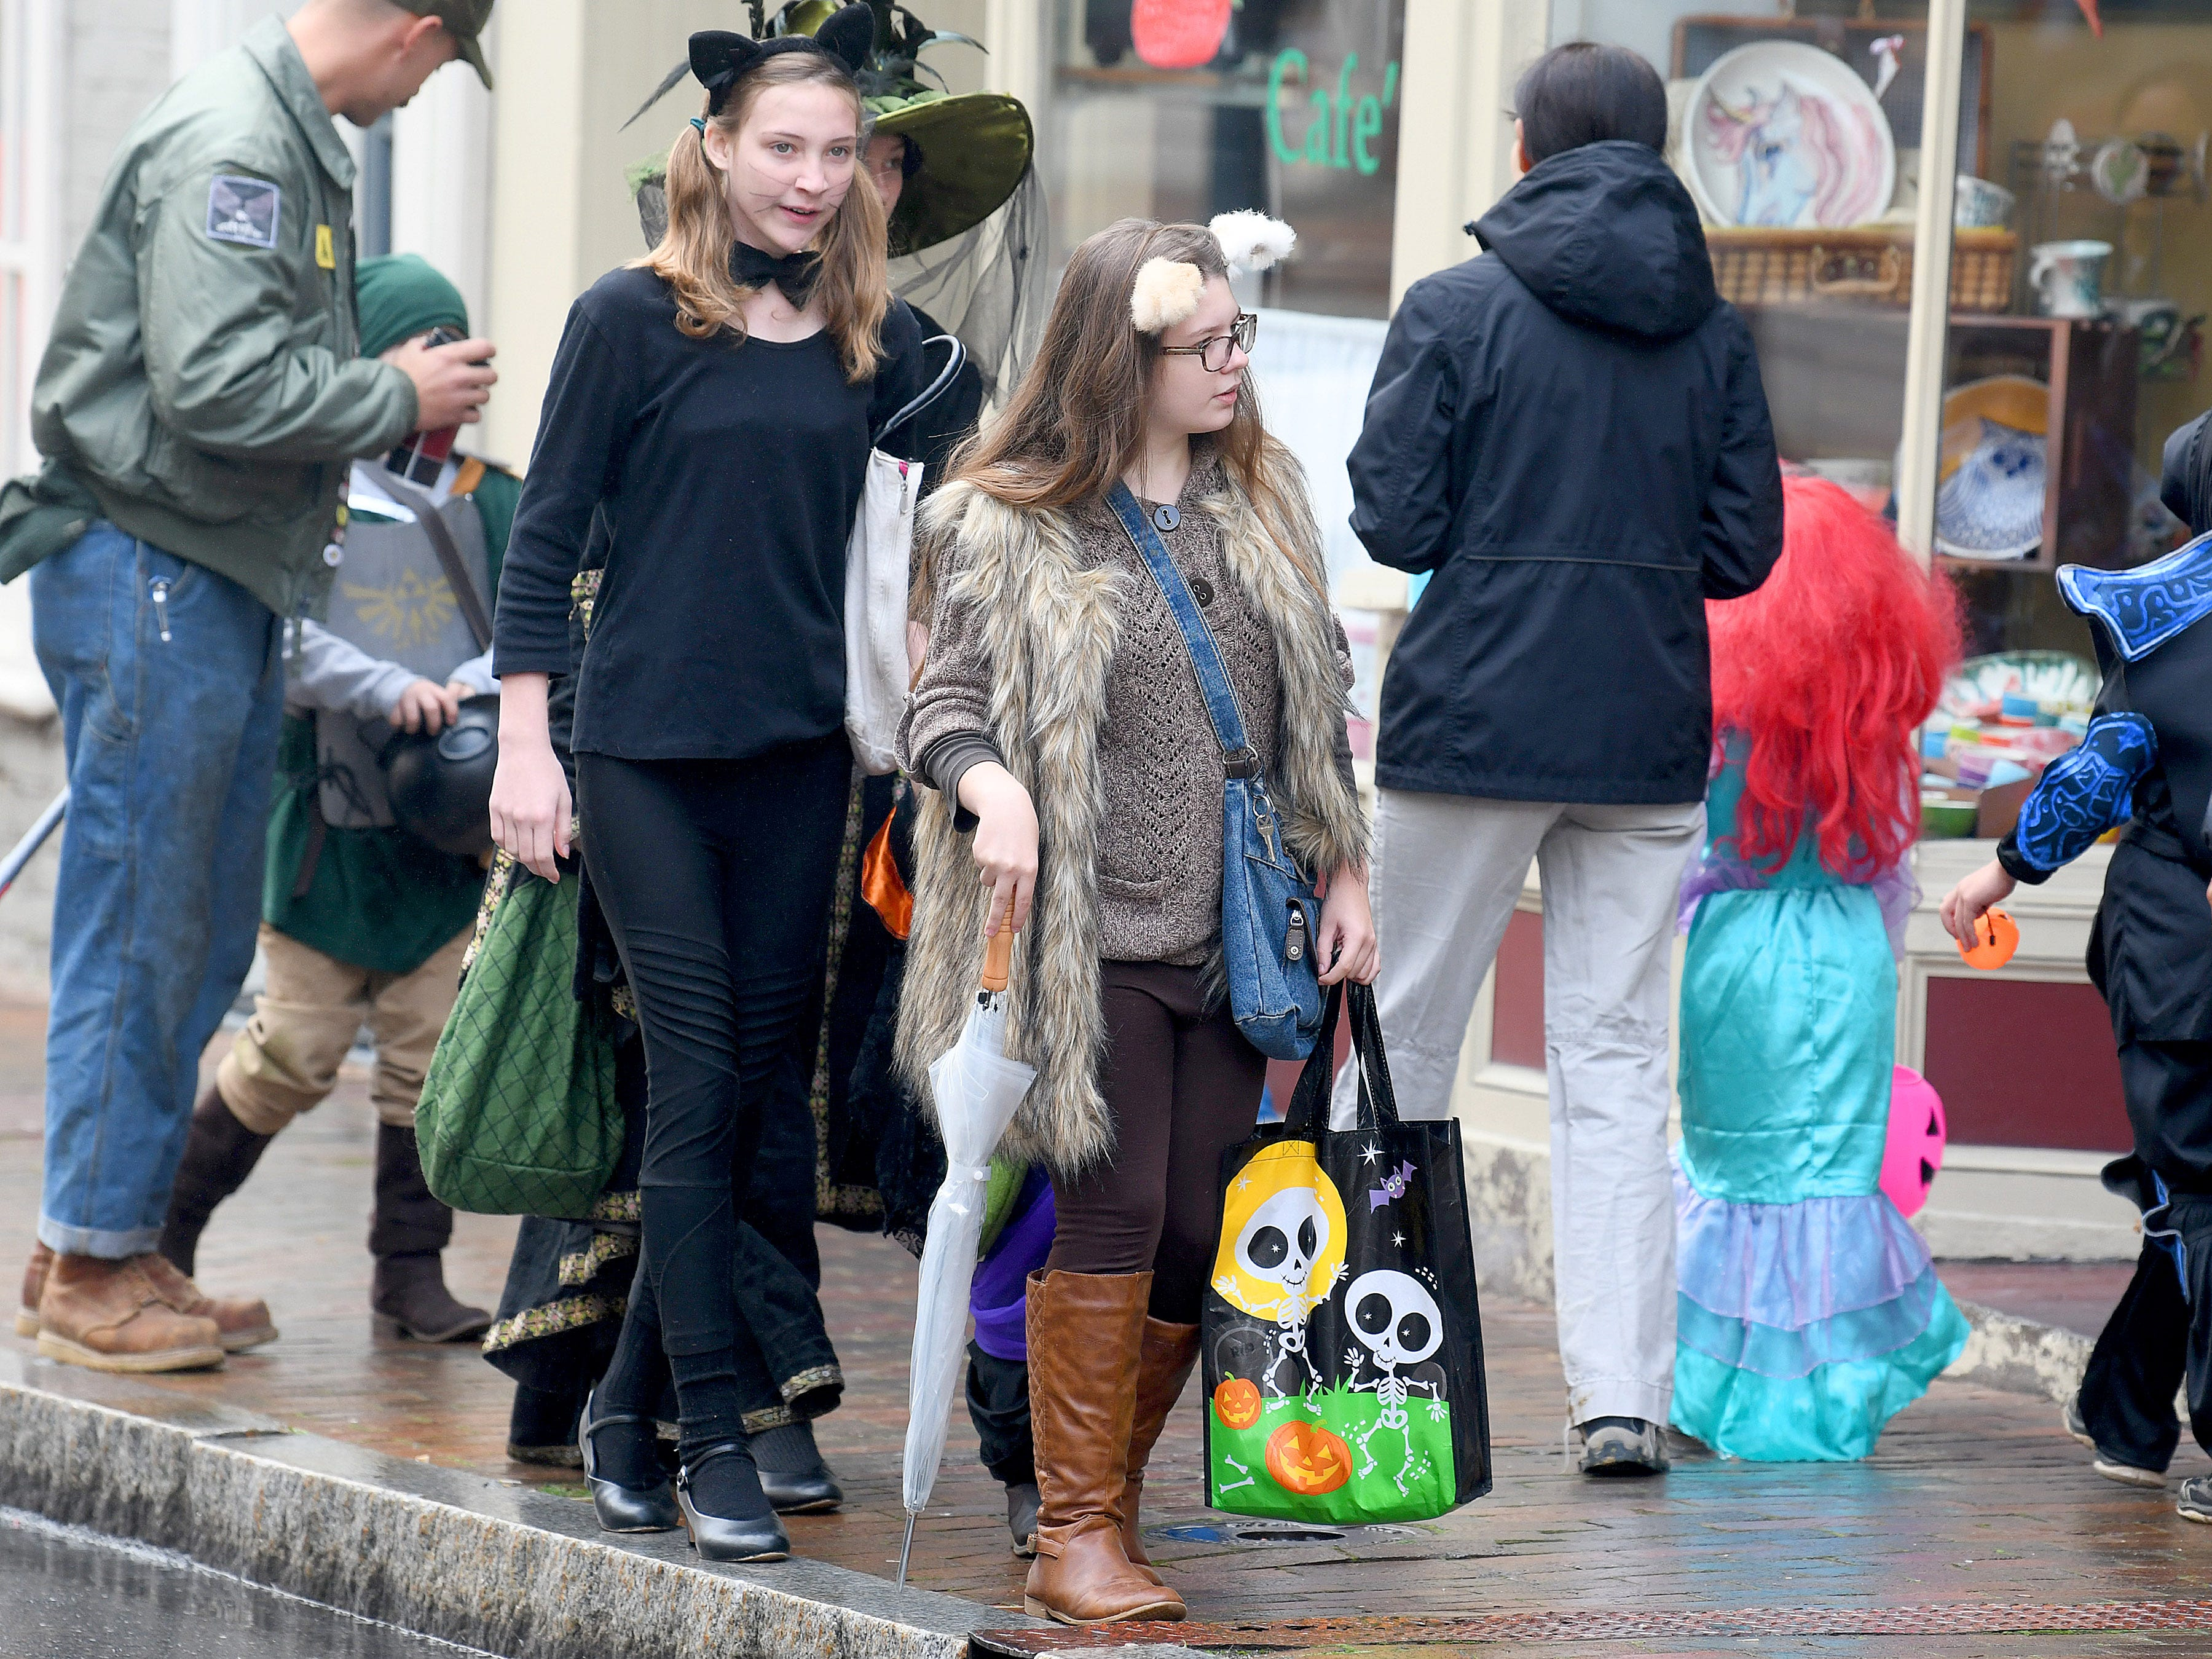 Trick-or-treaters filled the sidewalks and streets of downtown during the annual downtown trick-or-treating event in Staunton on Saturday, Oct. 27, 2018.